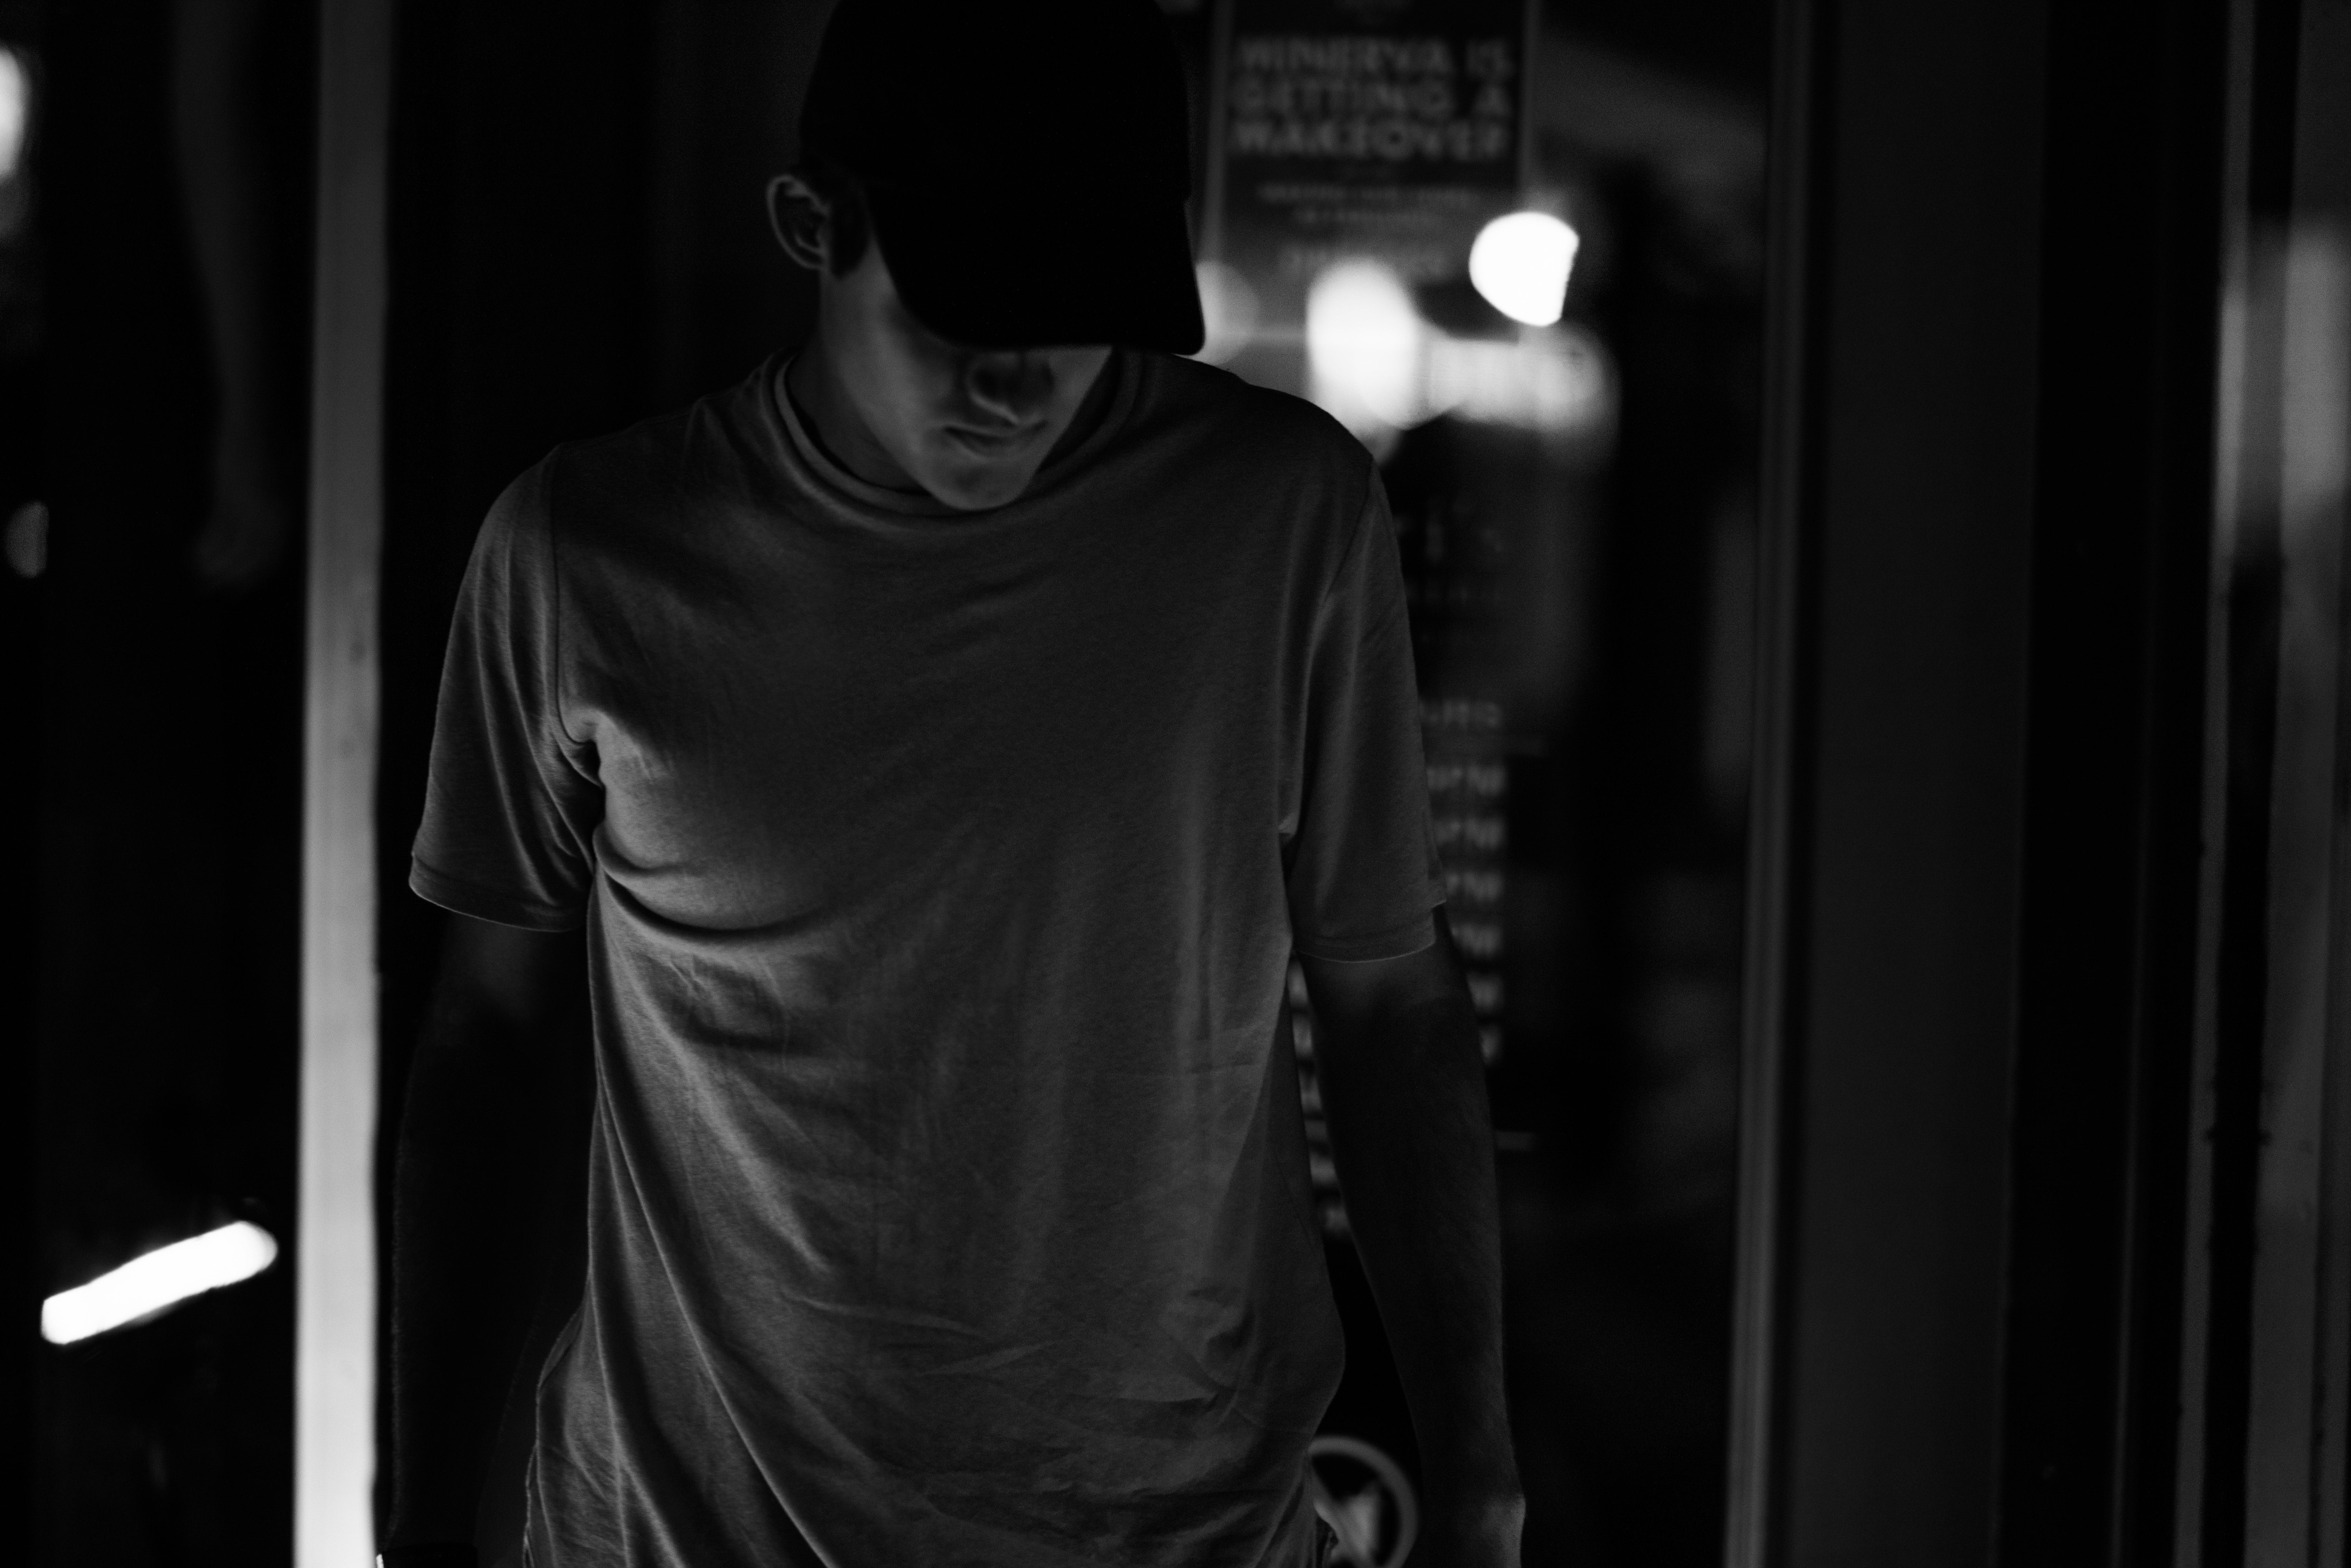 gray scale photography of man wearing crew-neck shirt and trucker hat